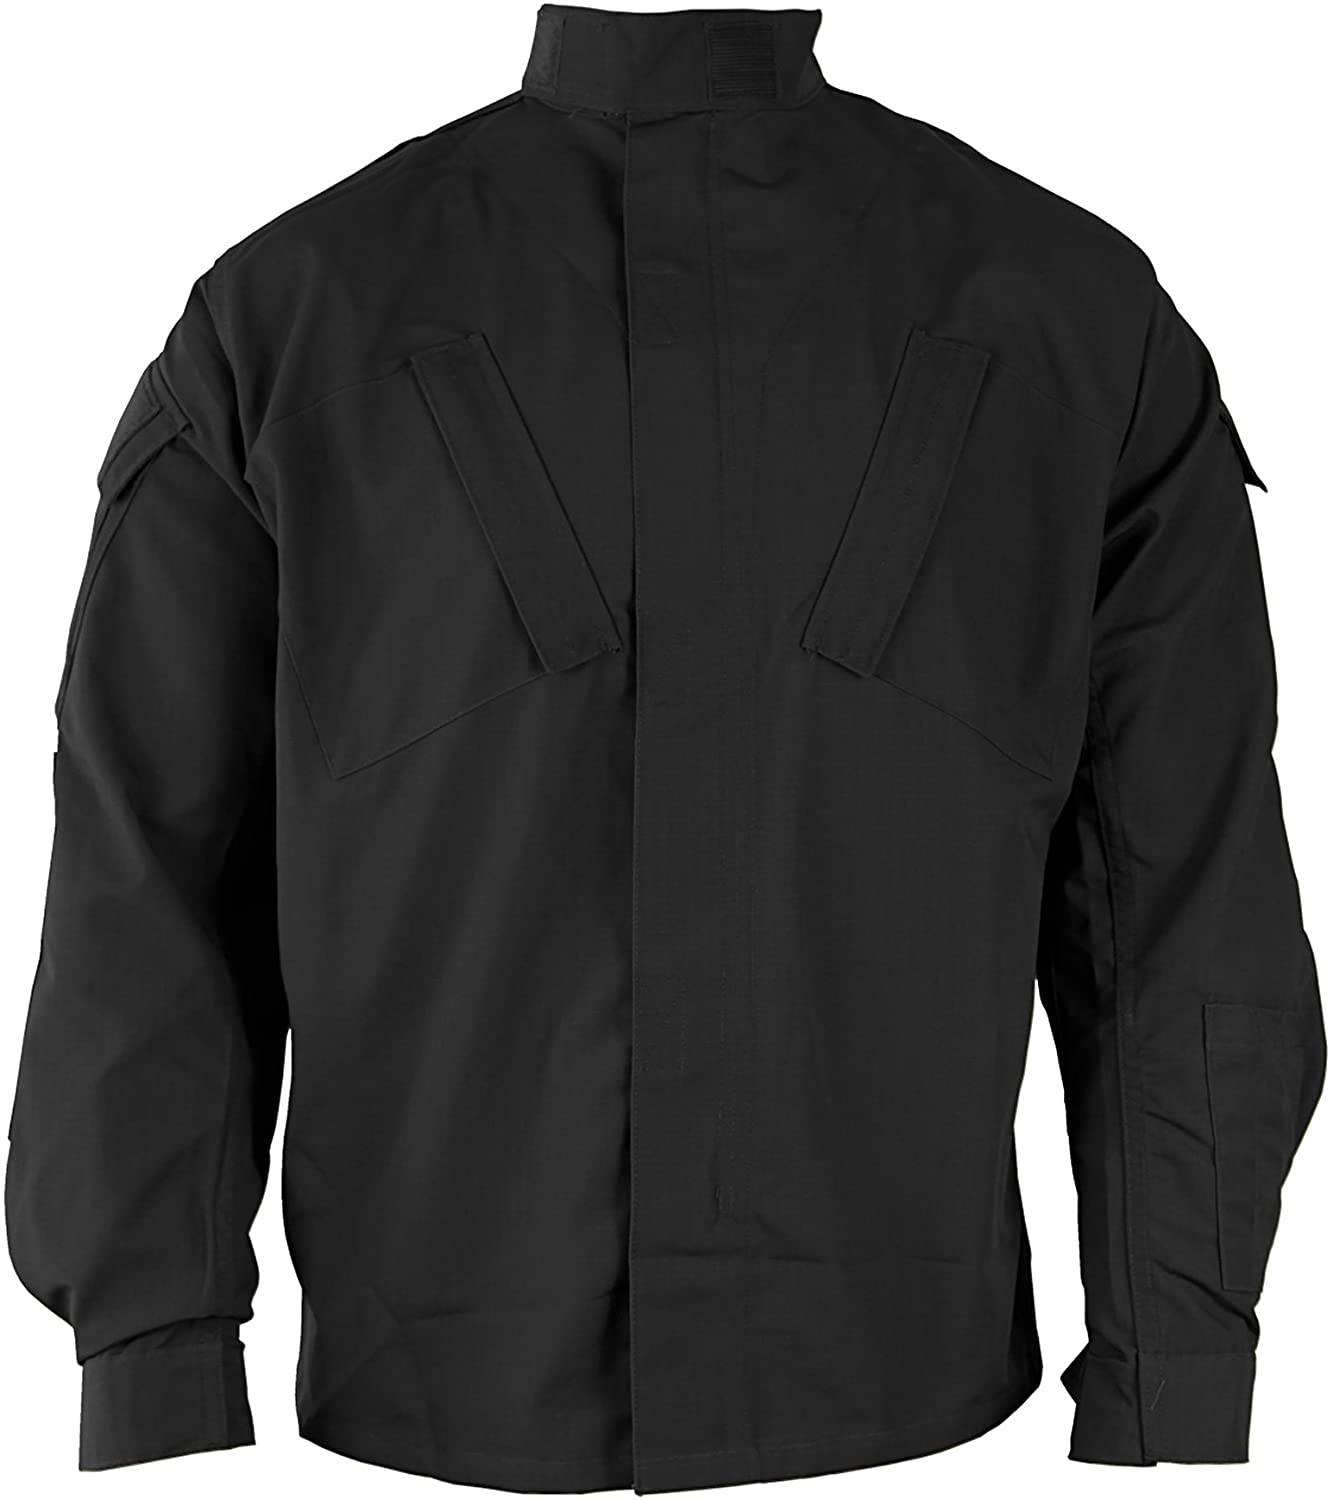 Propper Tac.u Coat - Black / 4xl Regular